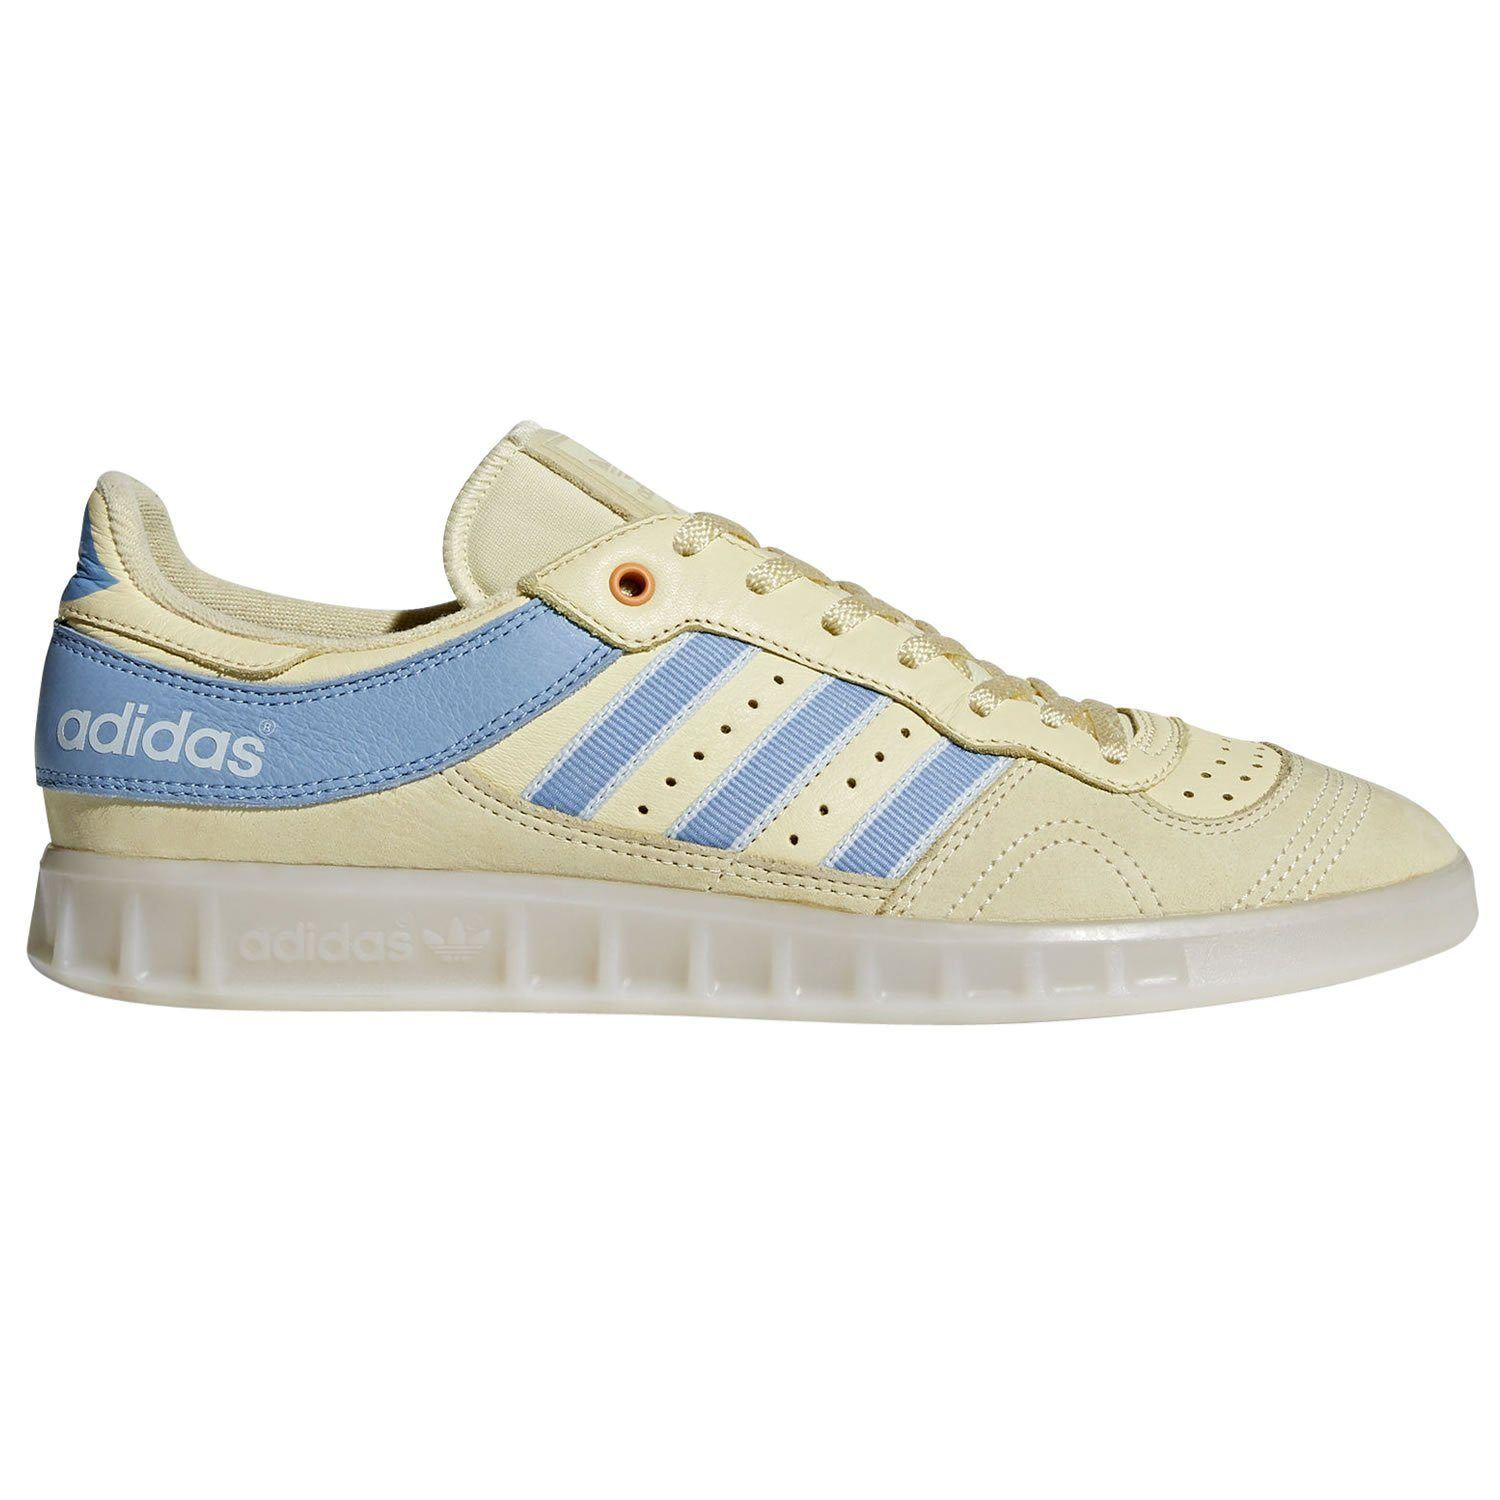 Details about adidas ORIGINALS MEN'S HANDBALL TOP OYSTER YELLOW SNEAKERS SHOES TRAINERS RARE